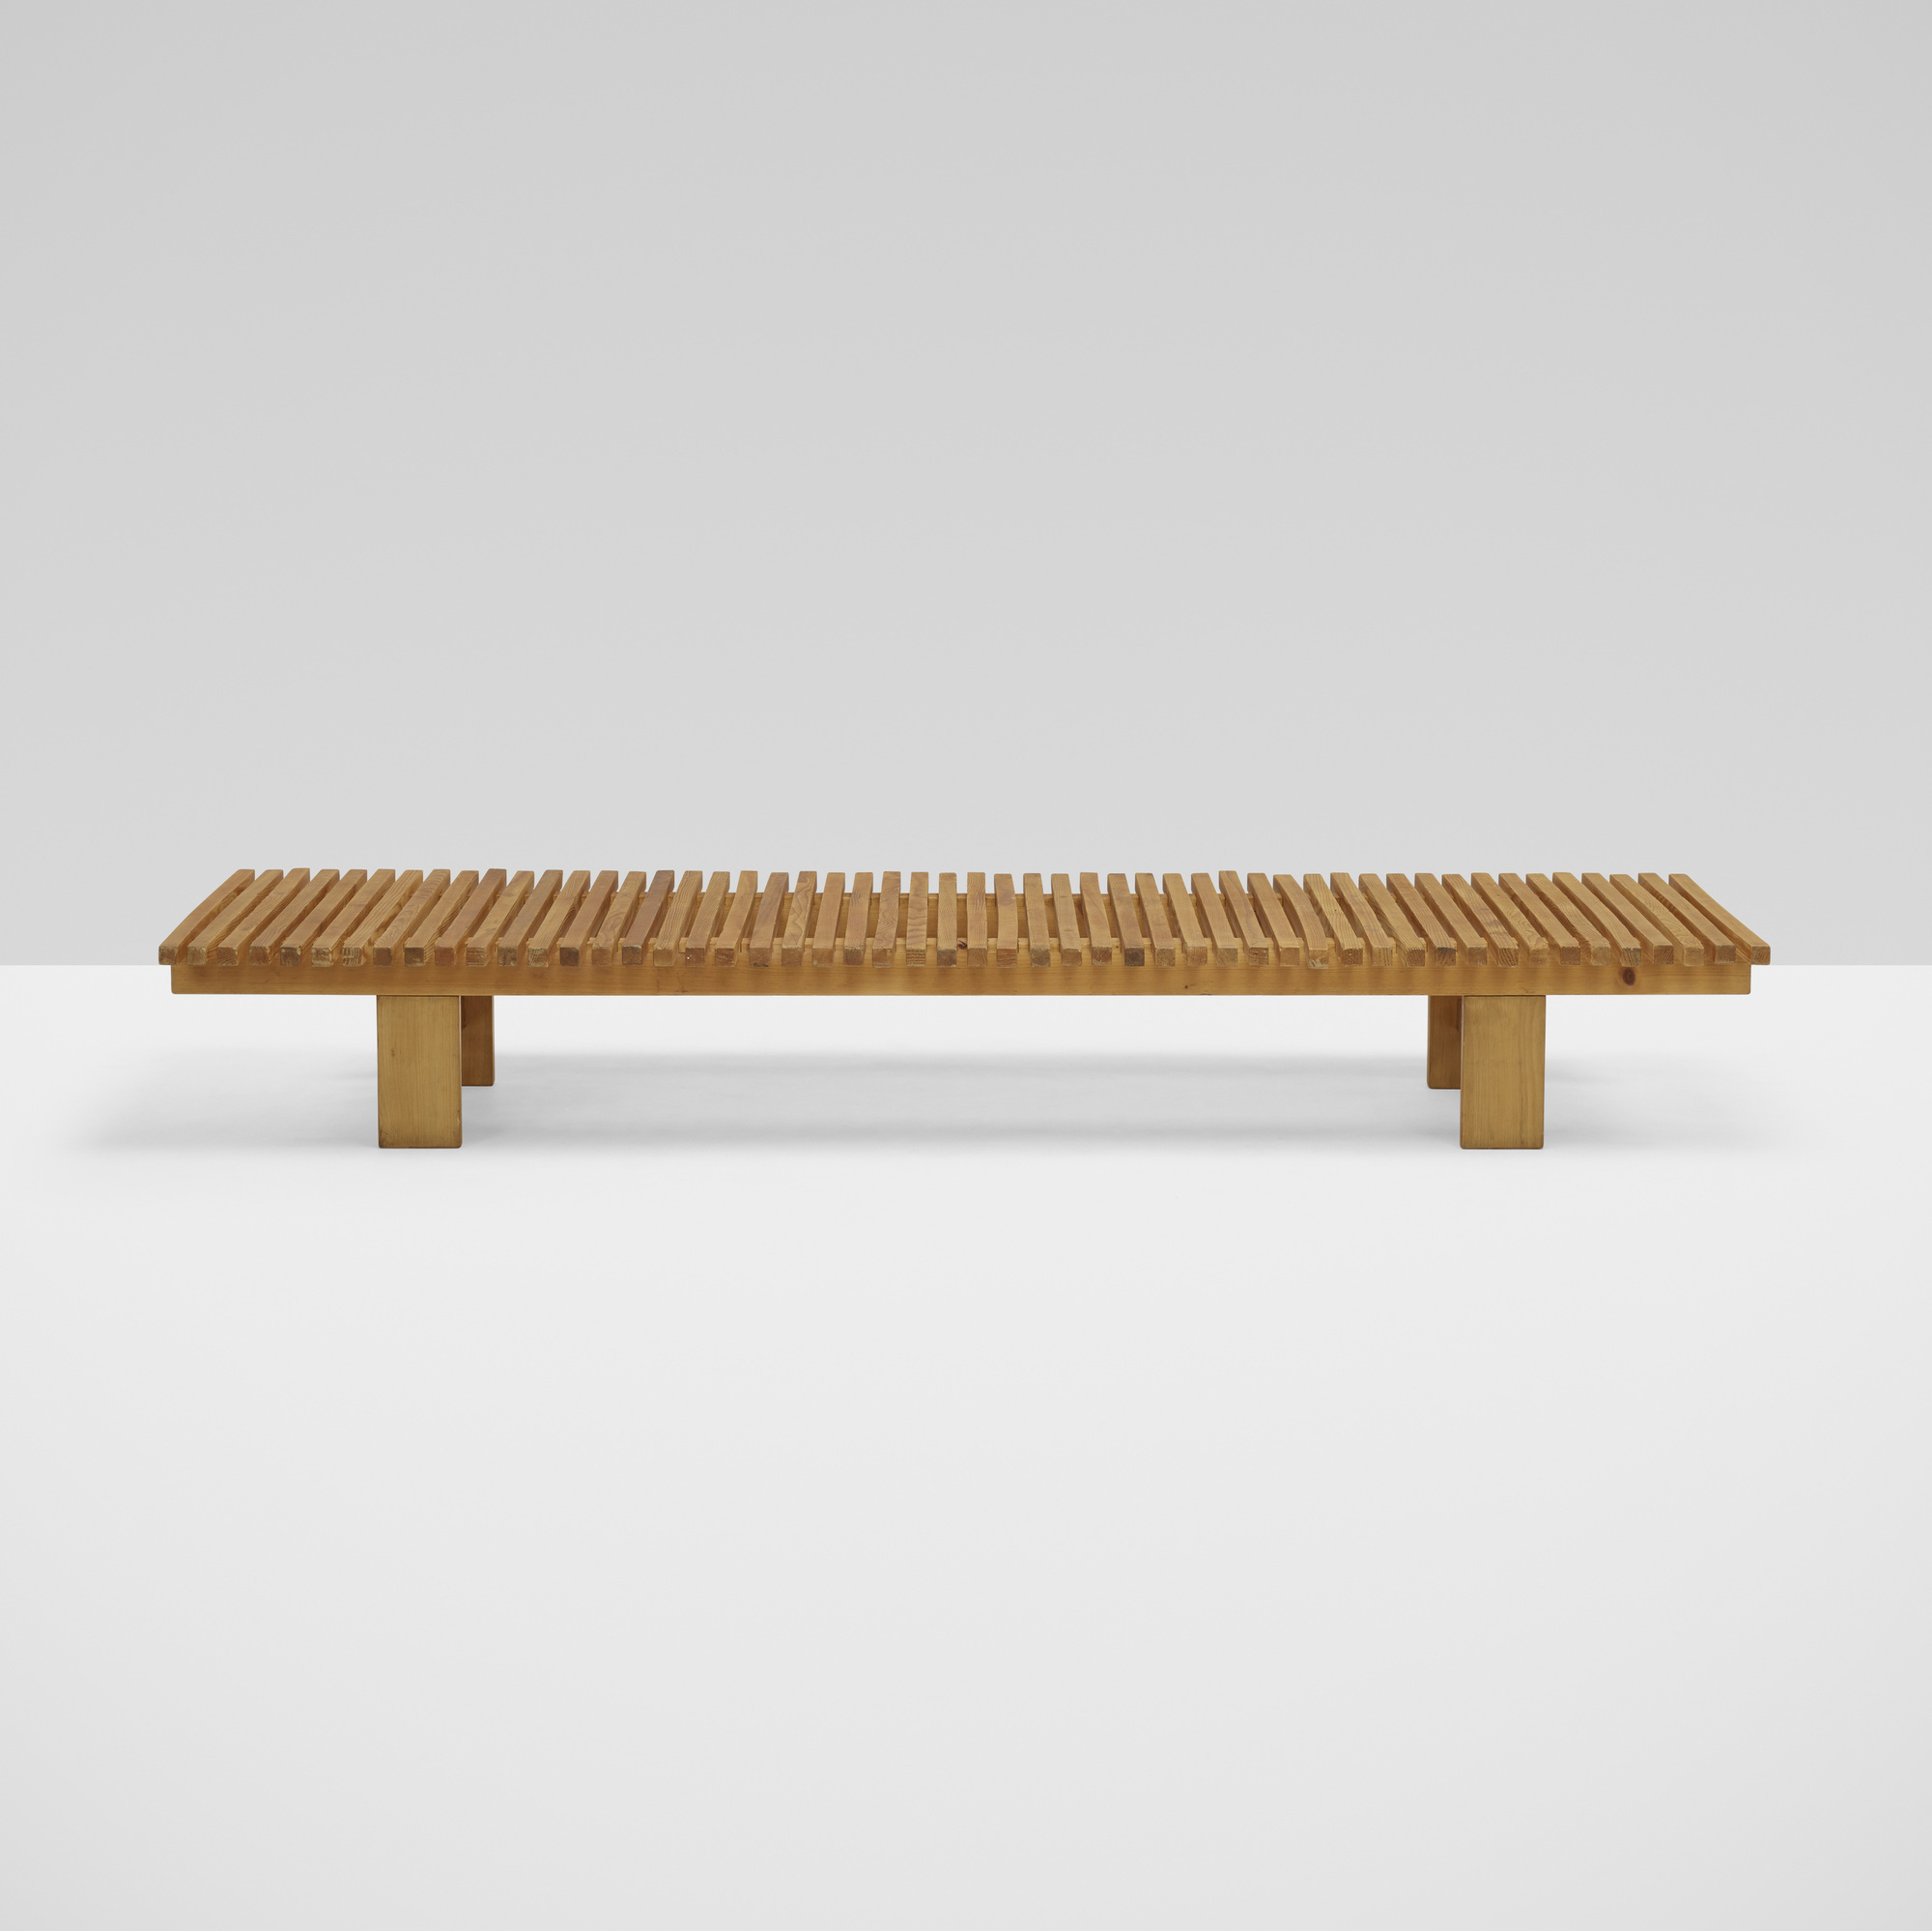 122: Charlotte Perriand / bench from Les Arcs, Savoie (2 of 4)